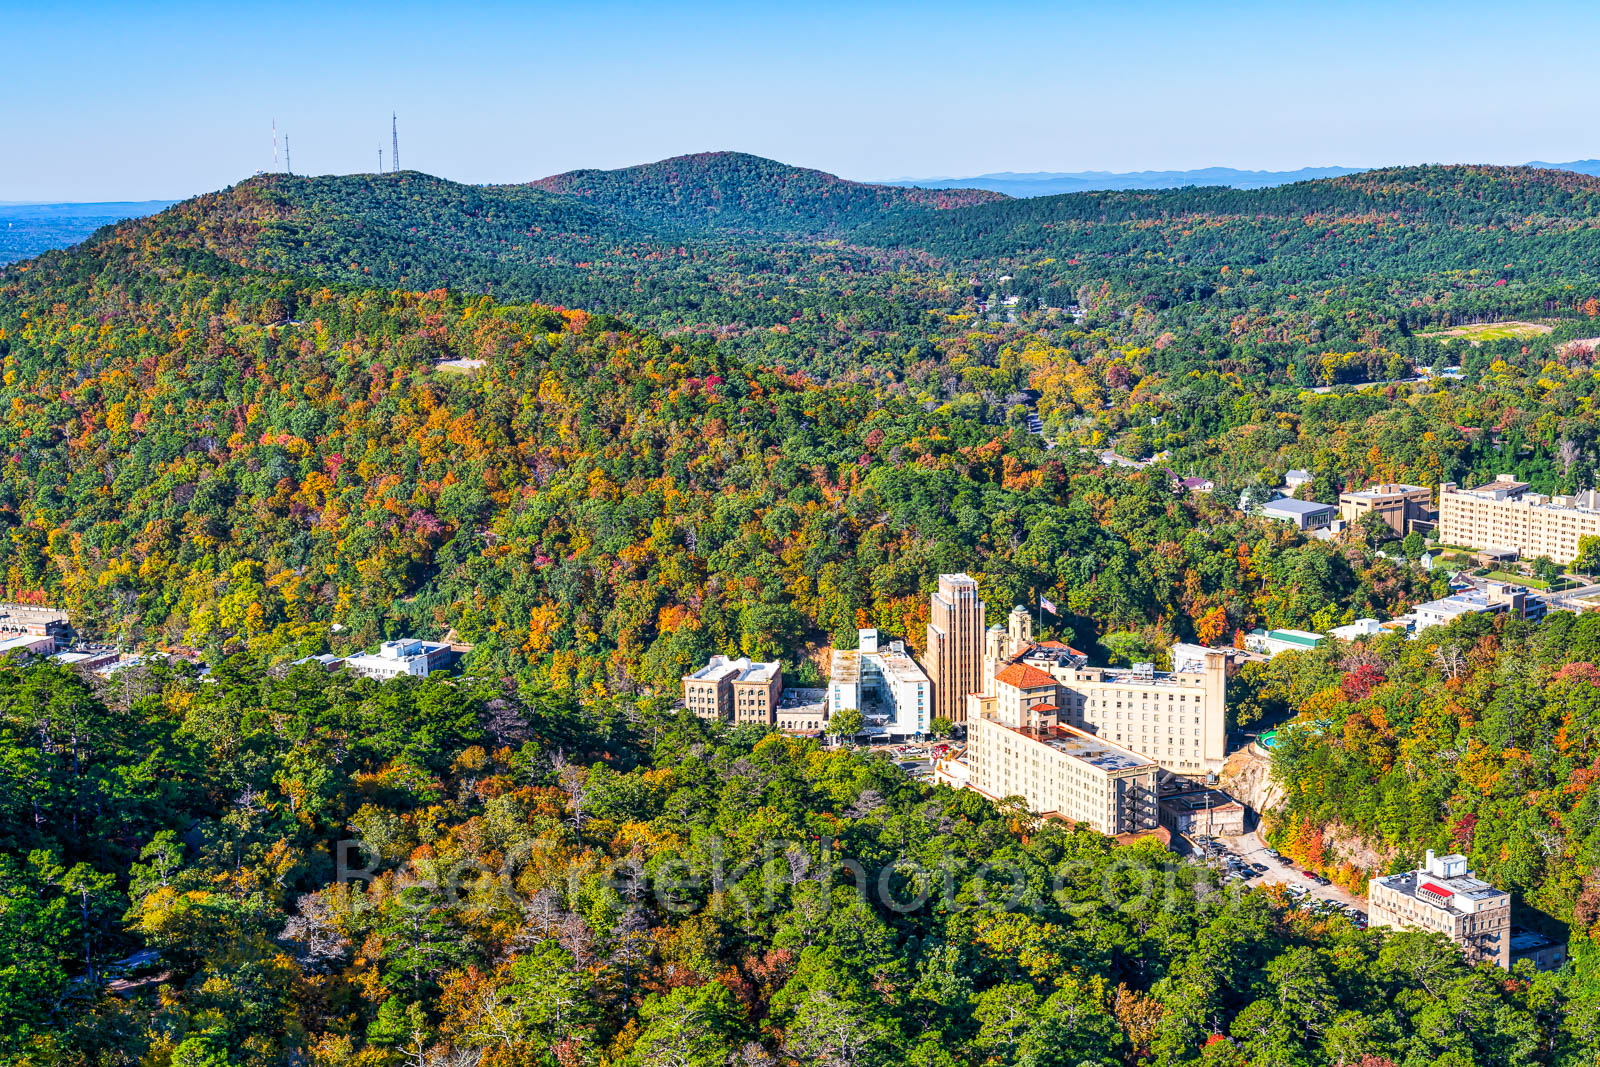 Tower Mountain, Hot Springs, color, fall, trees, hillside, Arlington Hotel,, Medical Art Building, cityscape, downtown, tourist, town, hills,, photo